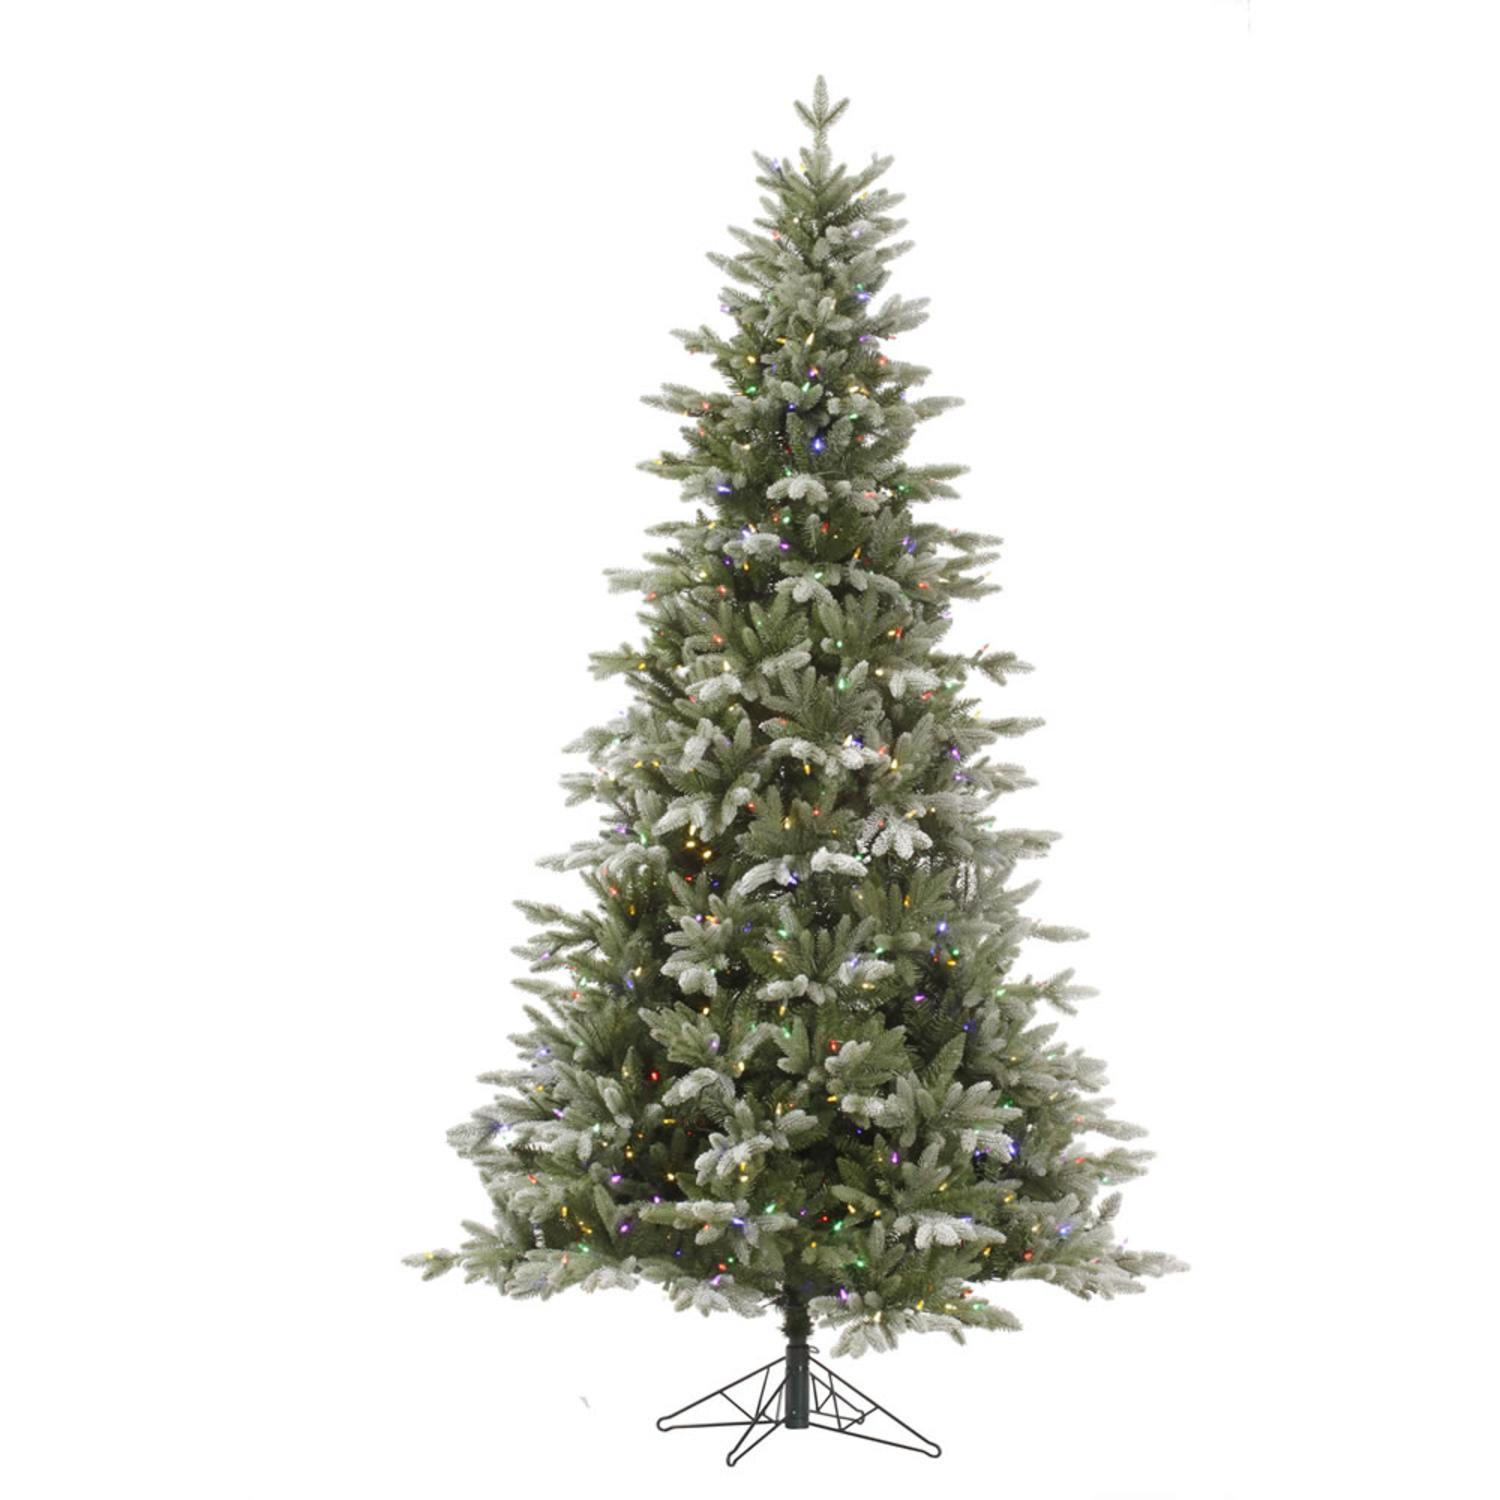 4.5' Pre-Lit Frosted Balsam Fir Medium Artificial Christmas Tree - Multi LED Lights